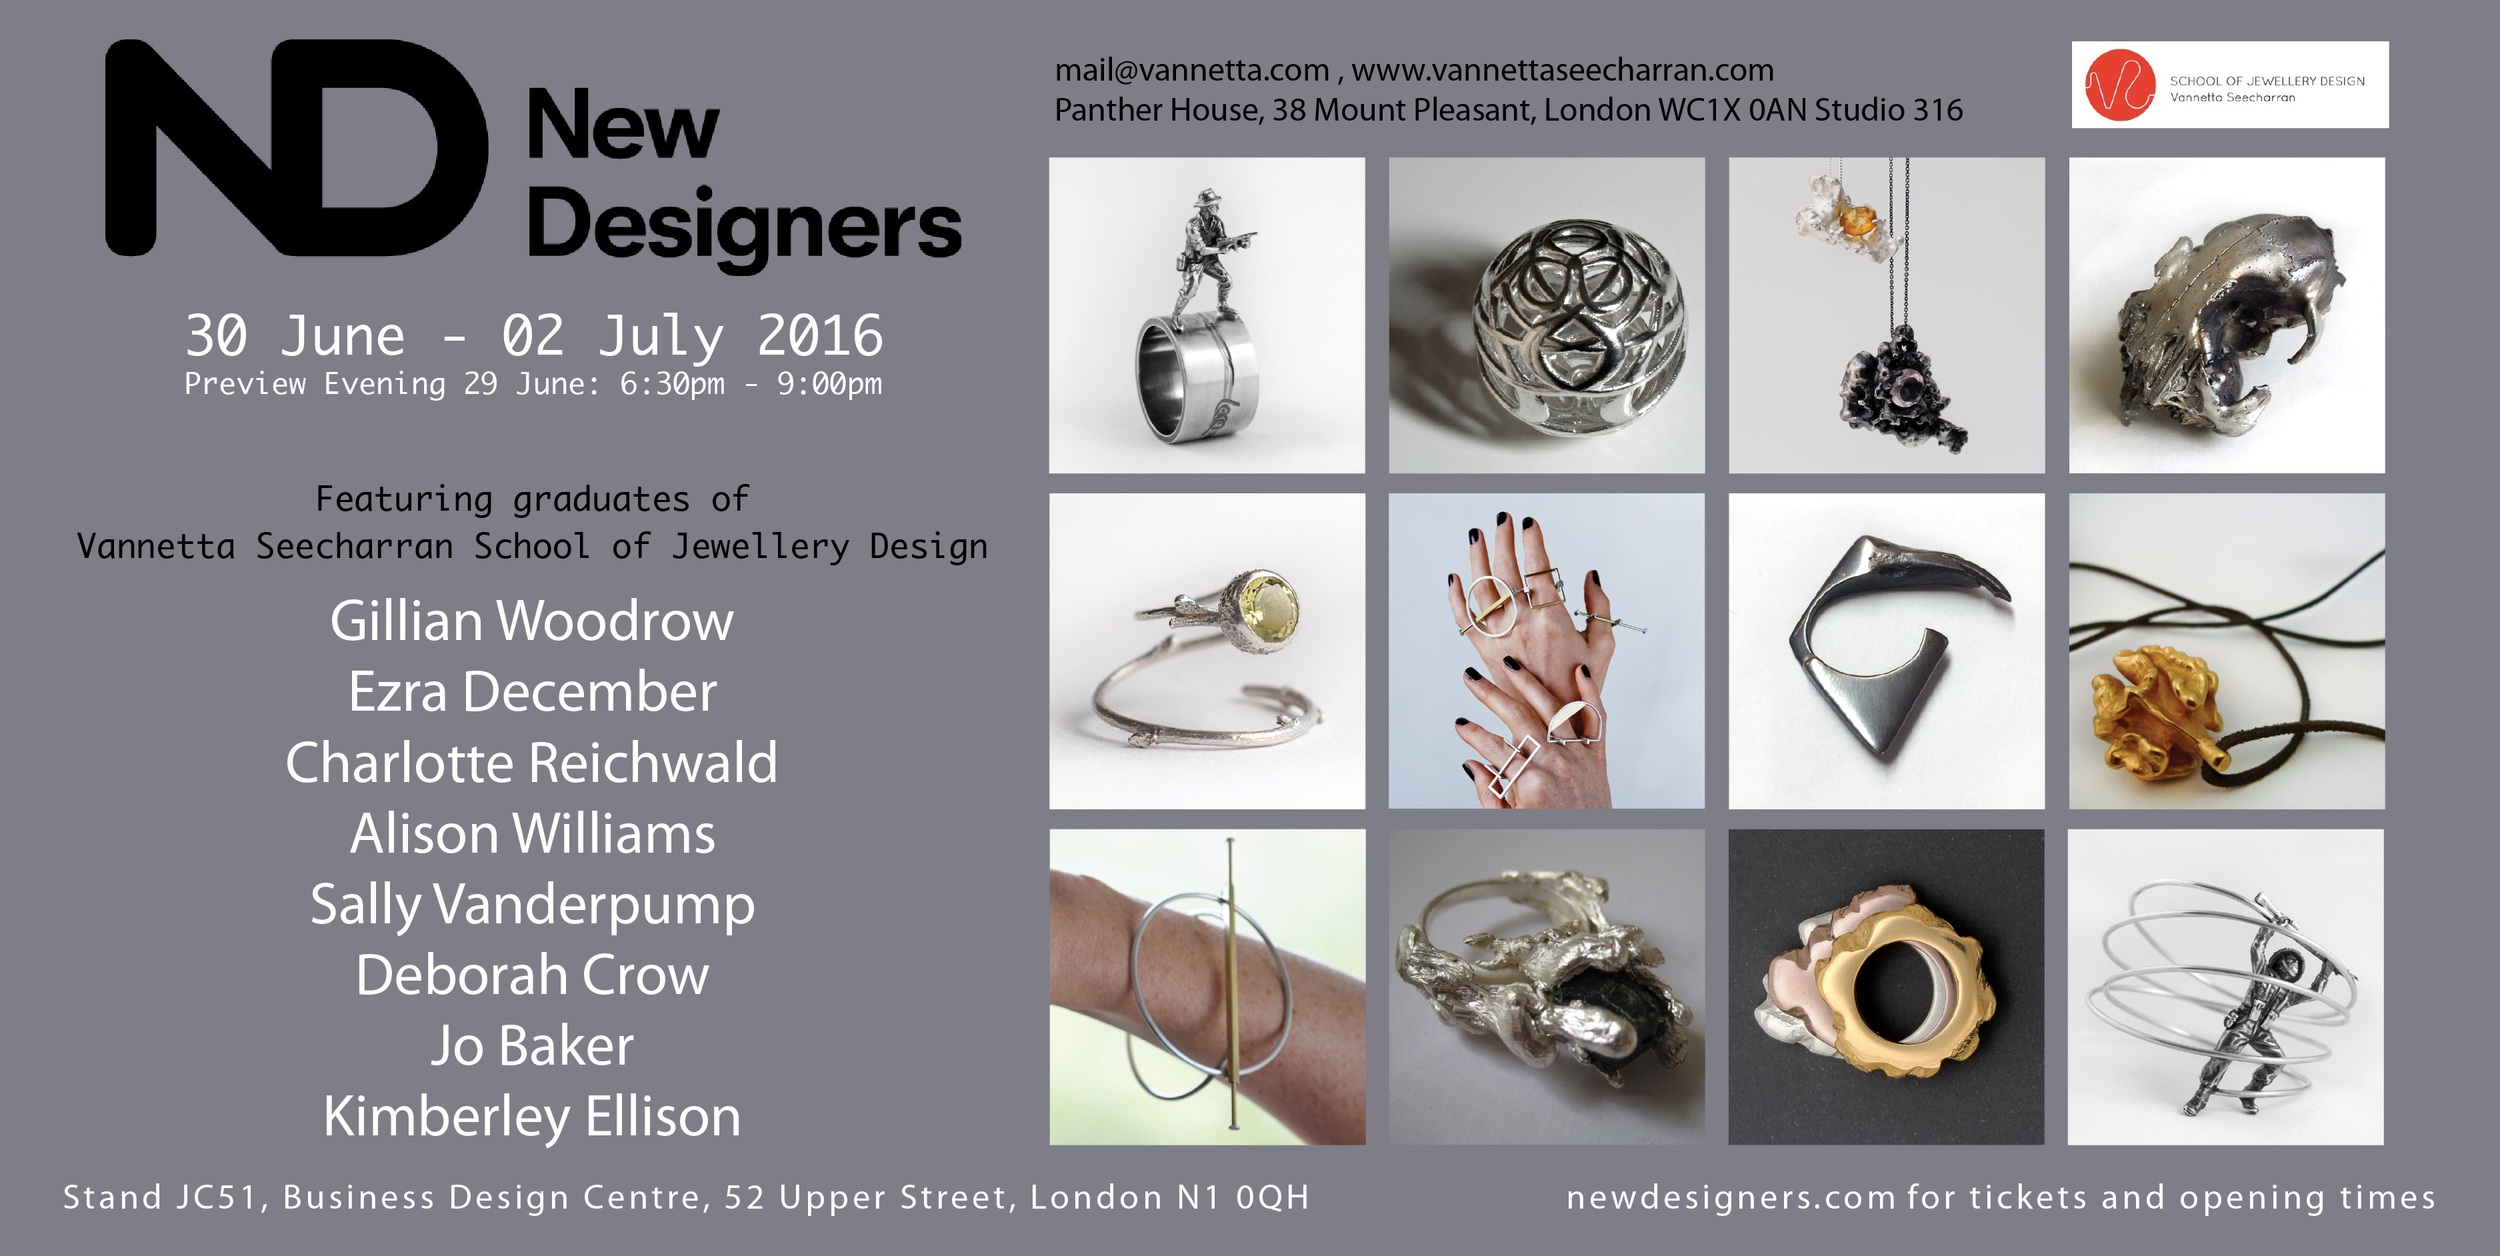 flyer invitation for New Designers 2016